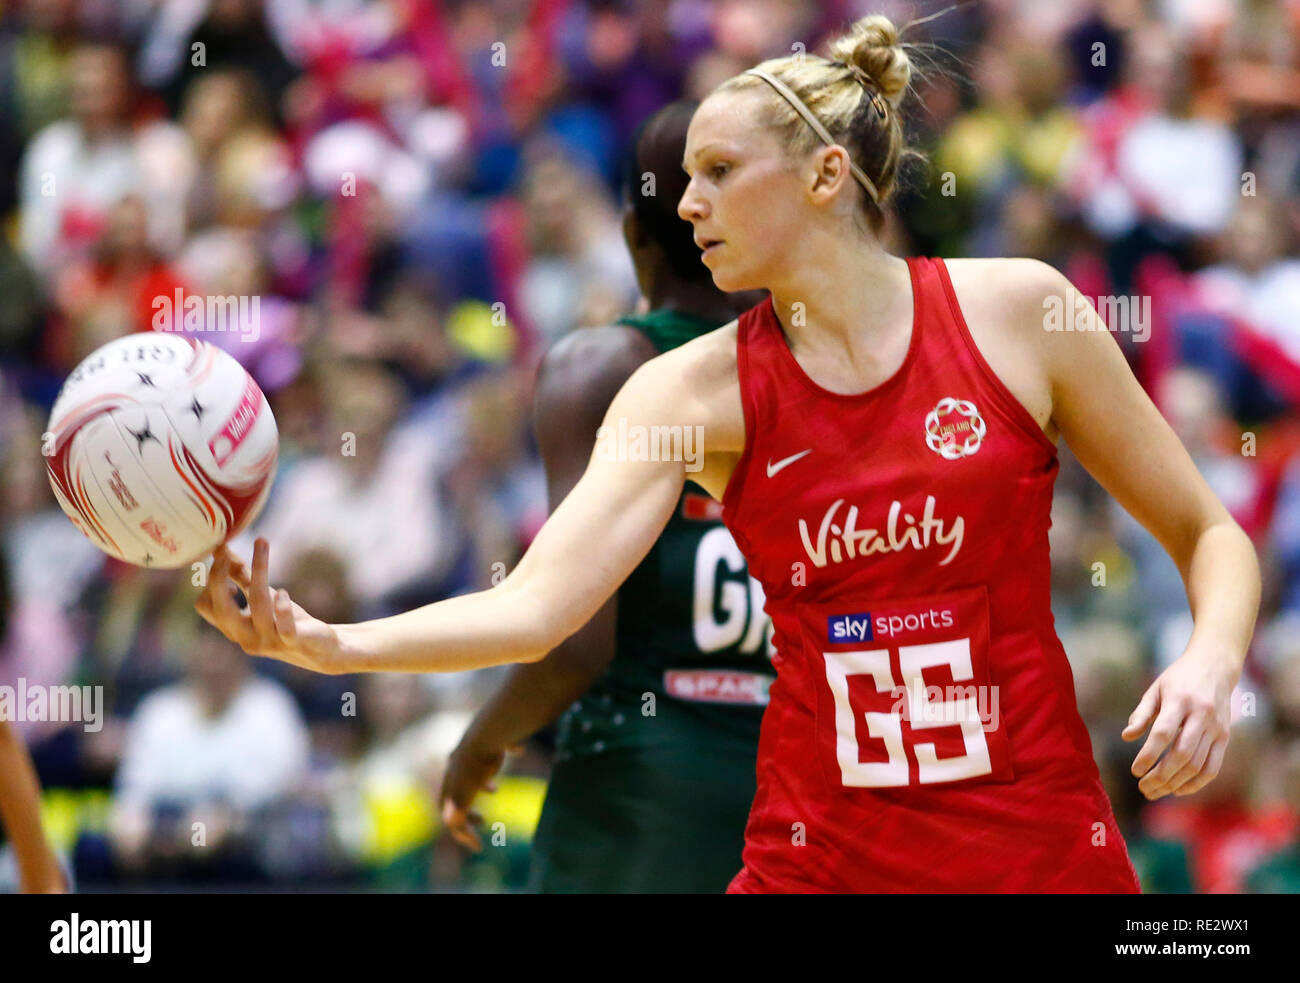 London, UK. 19th Jan 2019.  Jo (Joanne) Harten of England During Netball Quad Series Vitality Netball International match between England and South Afr at Copper Box Arena on January 19, 2019 in London, England.  Credit Action Foto Sport Credit: Action Foto Sport/Alamy Live News - Stock Image